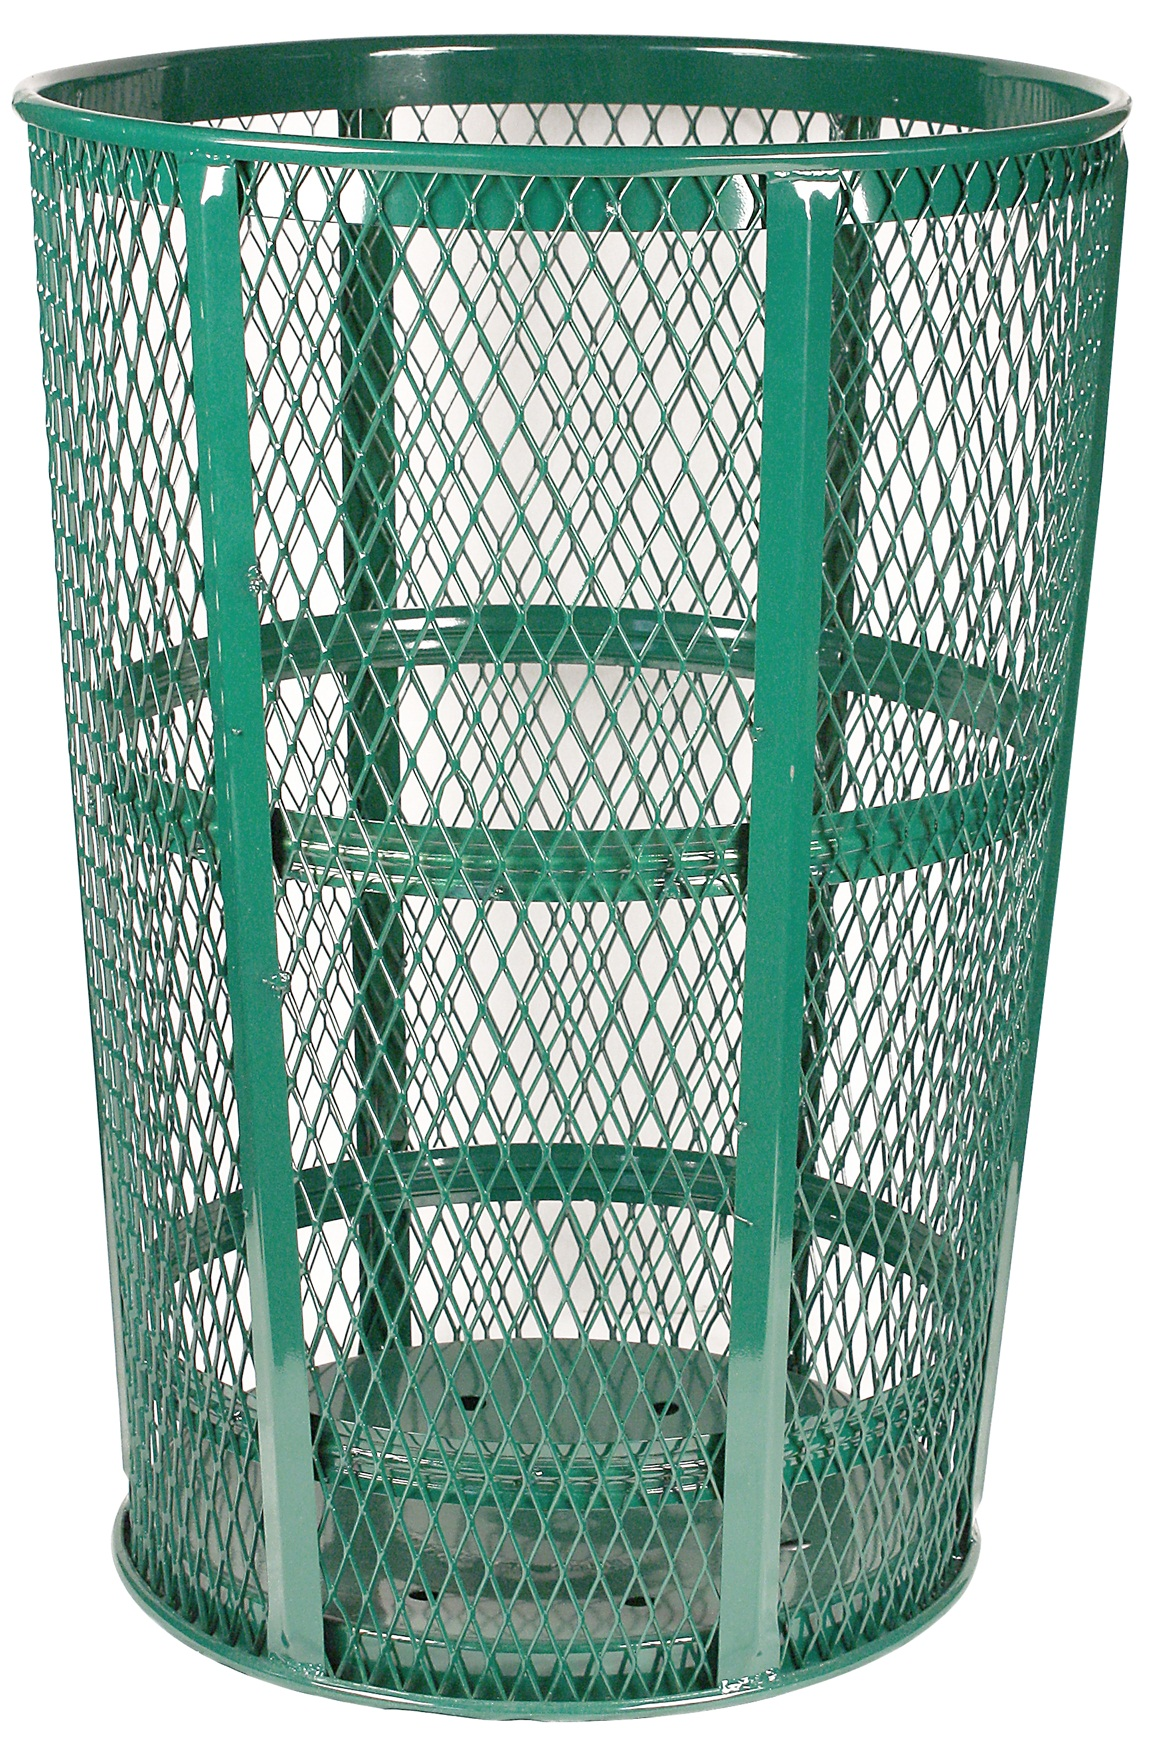 48 Gallon Green Expanded Metal Receptacle